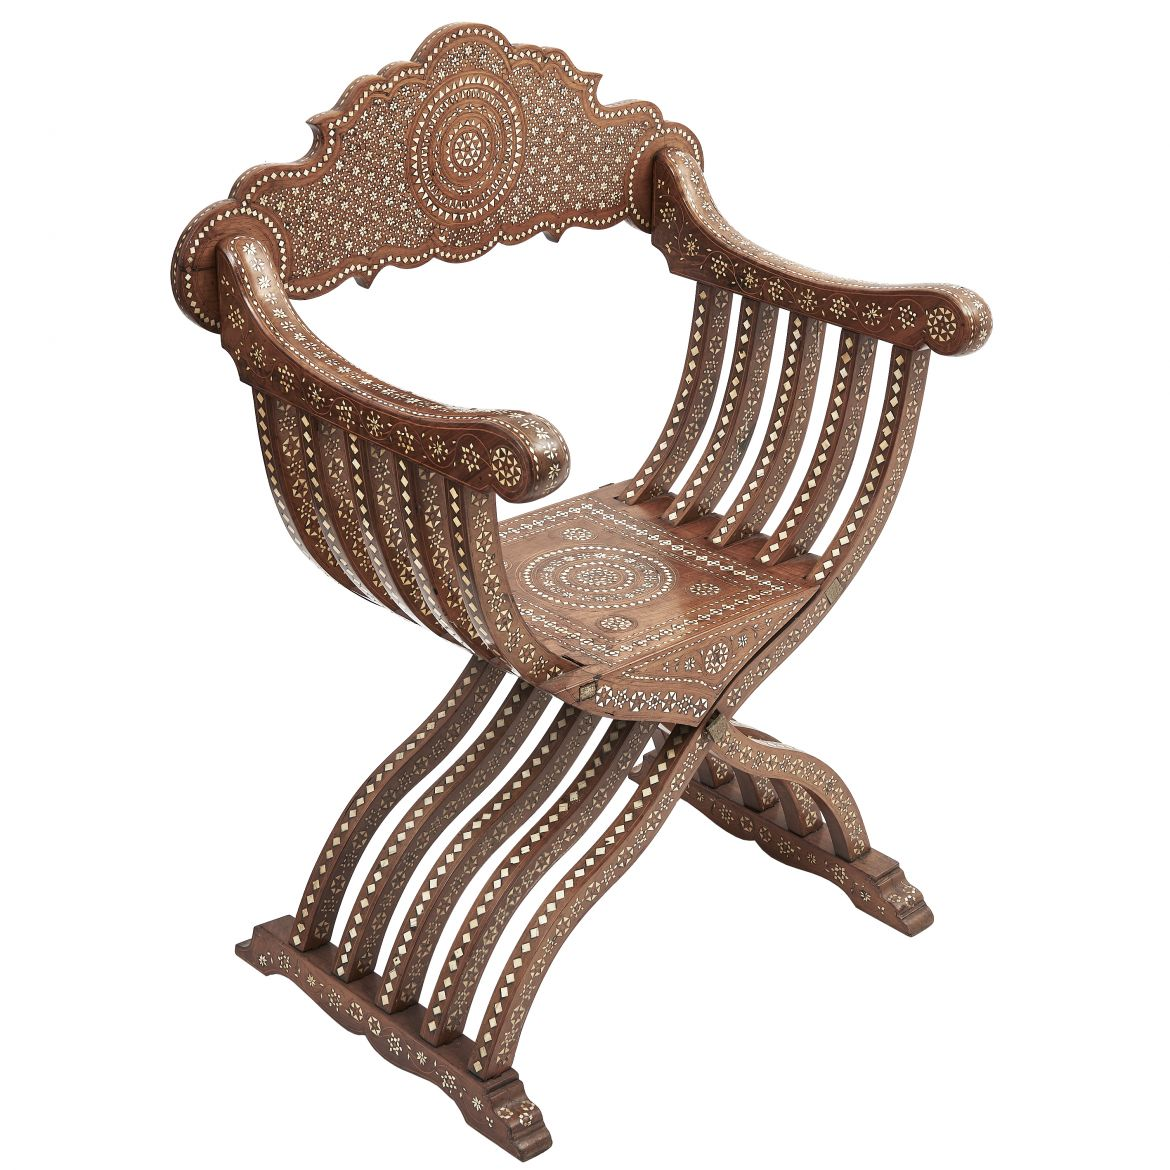 Walnut & Bone Inlaid Chair